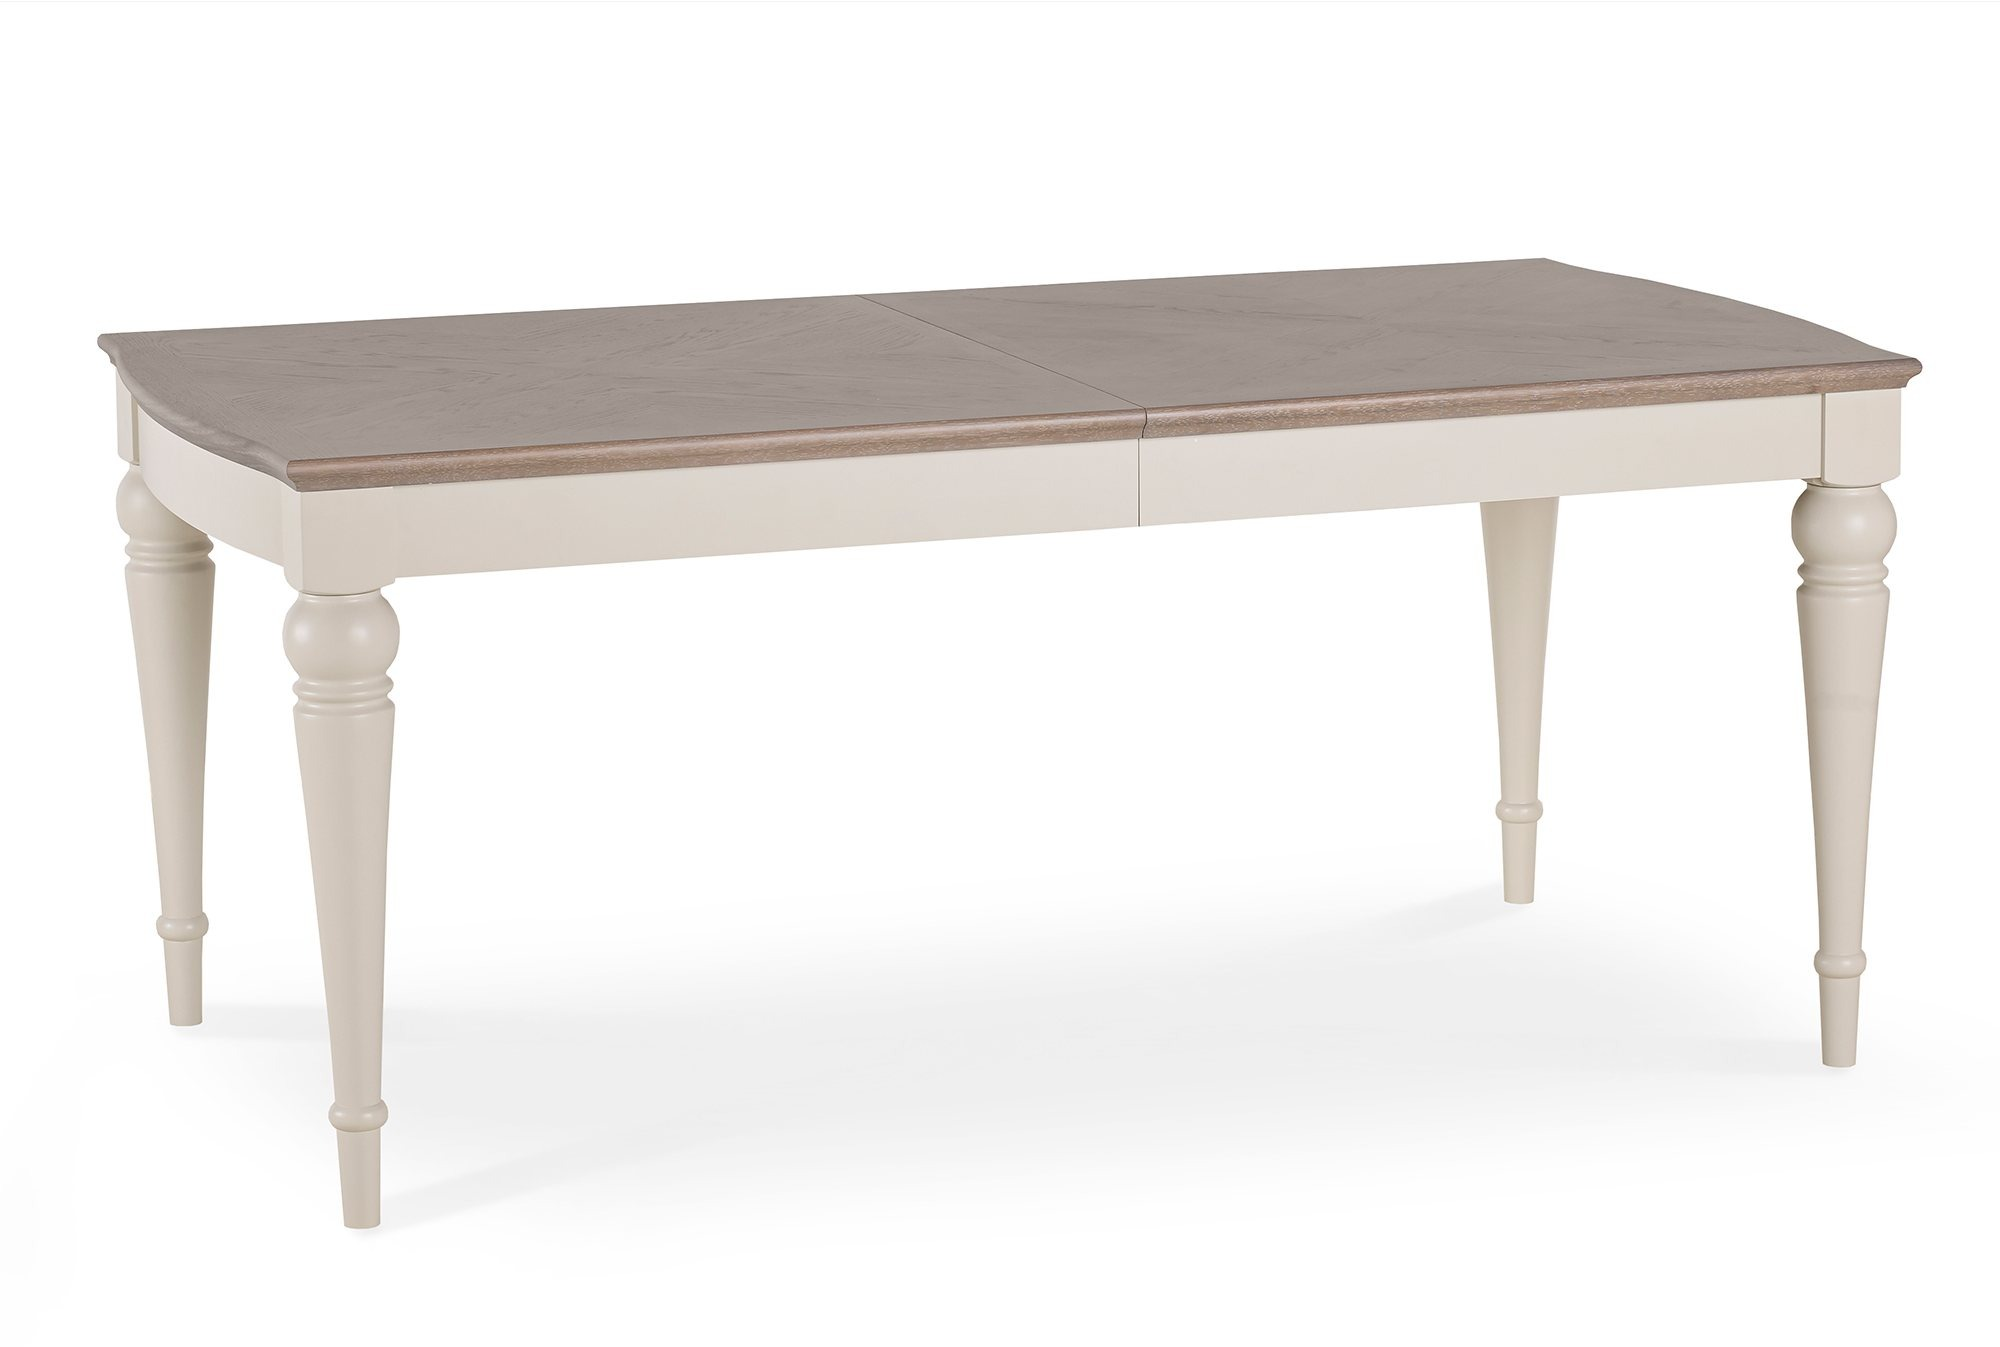 MONICA GREY DINING TABLE CLOSED